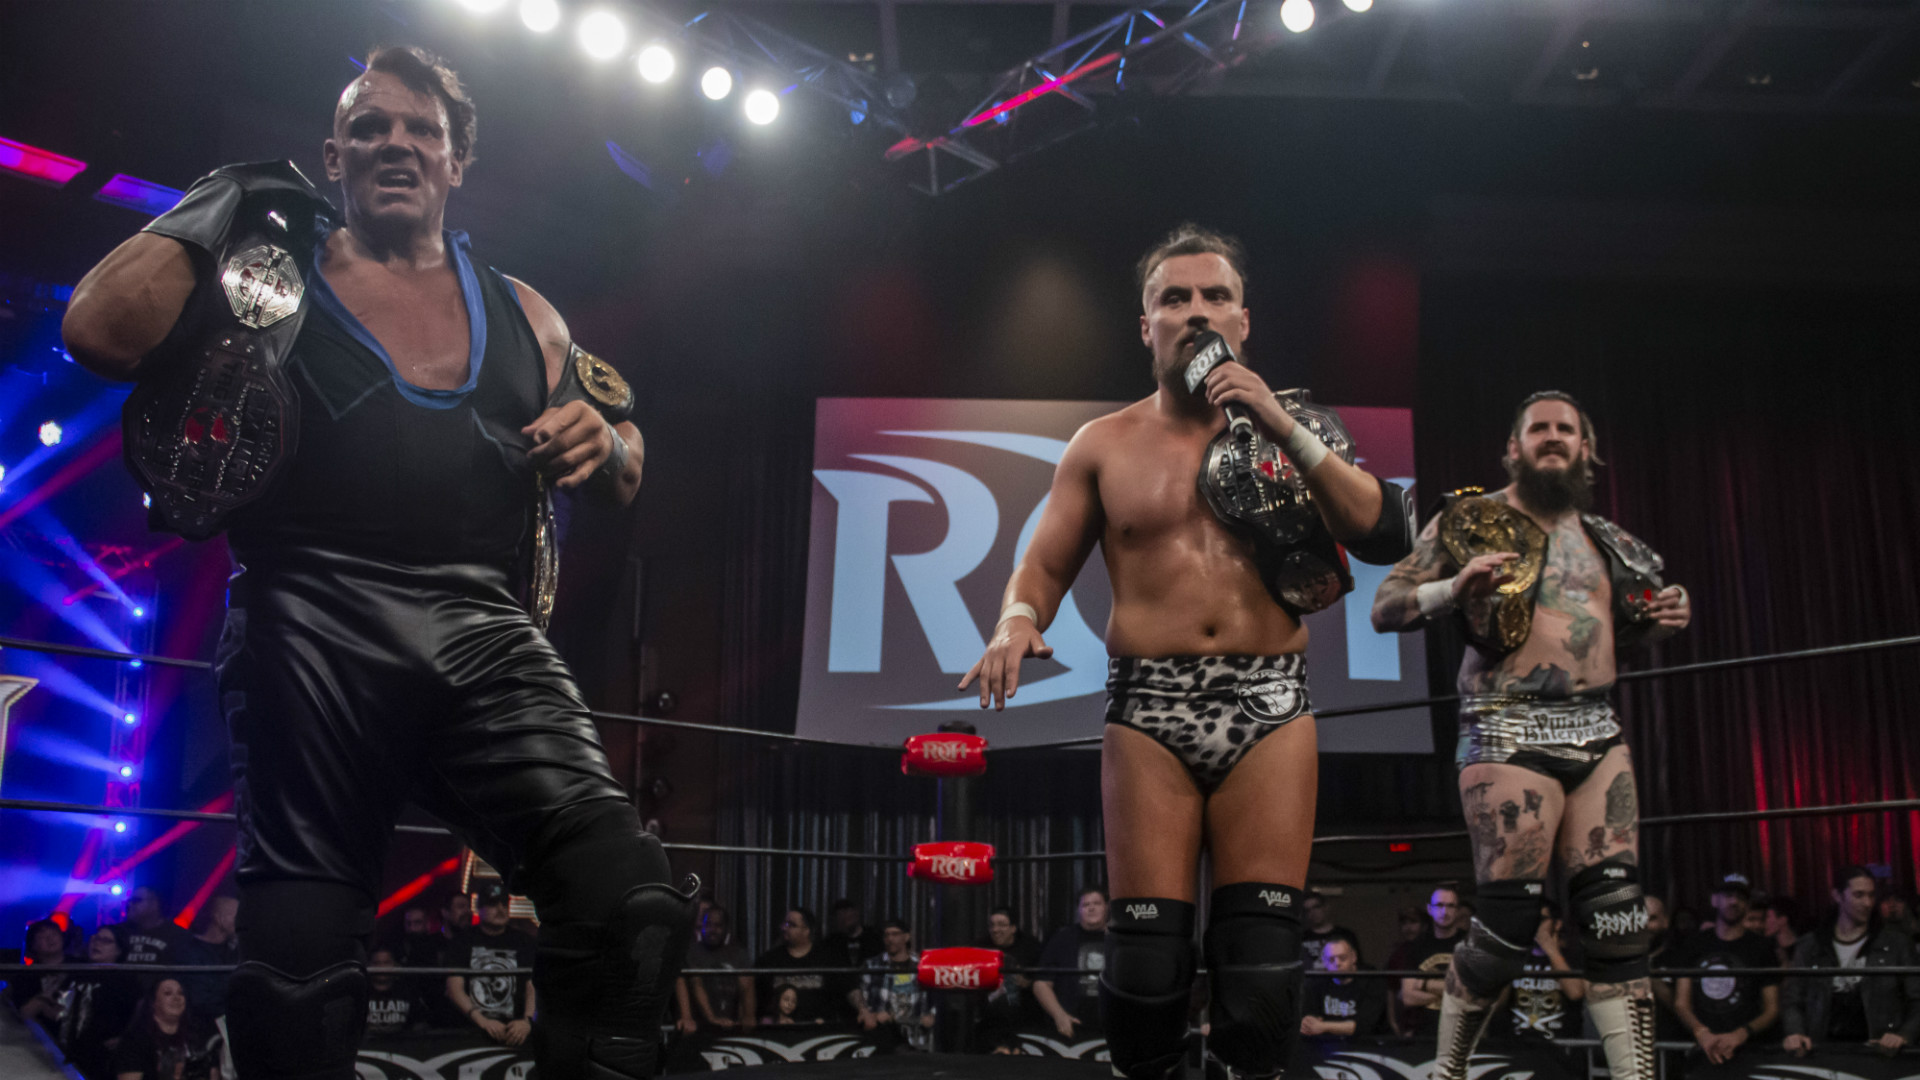 SN Q&A: PCO on his time in Ring of Honor, where'd he be without his 2018 match vs. WALTER and if he ever thought he'd get back to this point in wrestling